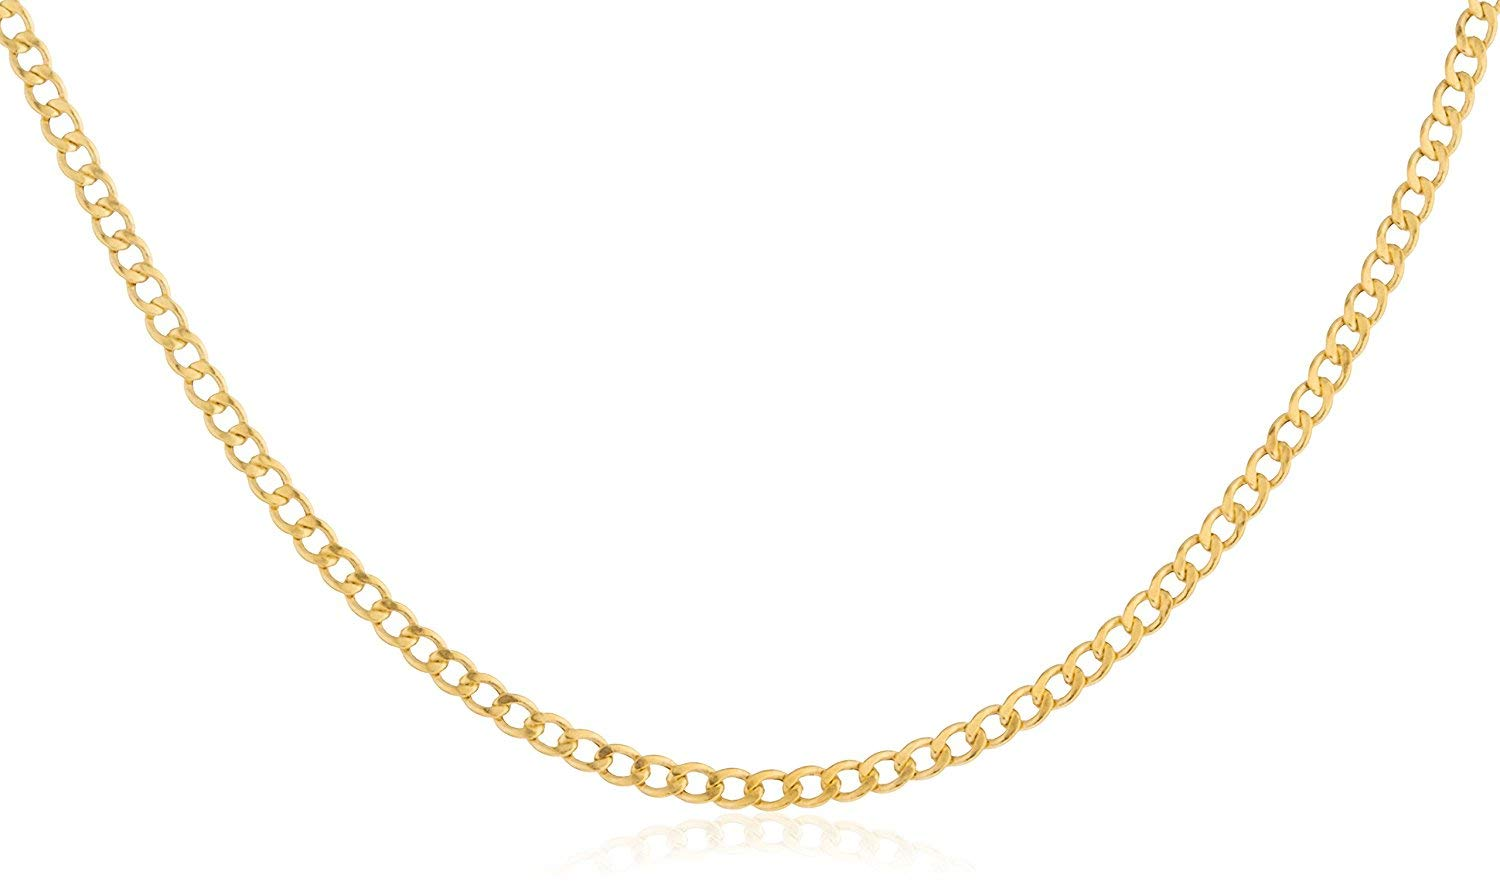 14K Yellow Gold 2.0mm Cuban/Curb Link Chain Necklace- Made in Italy-16-30 (Yellow, 24)